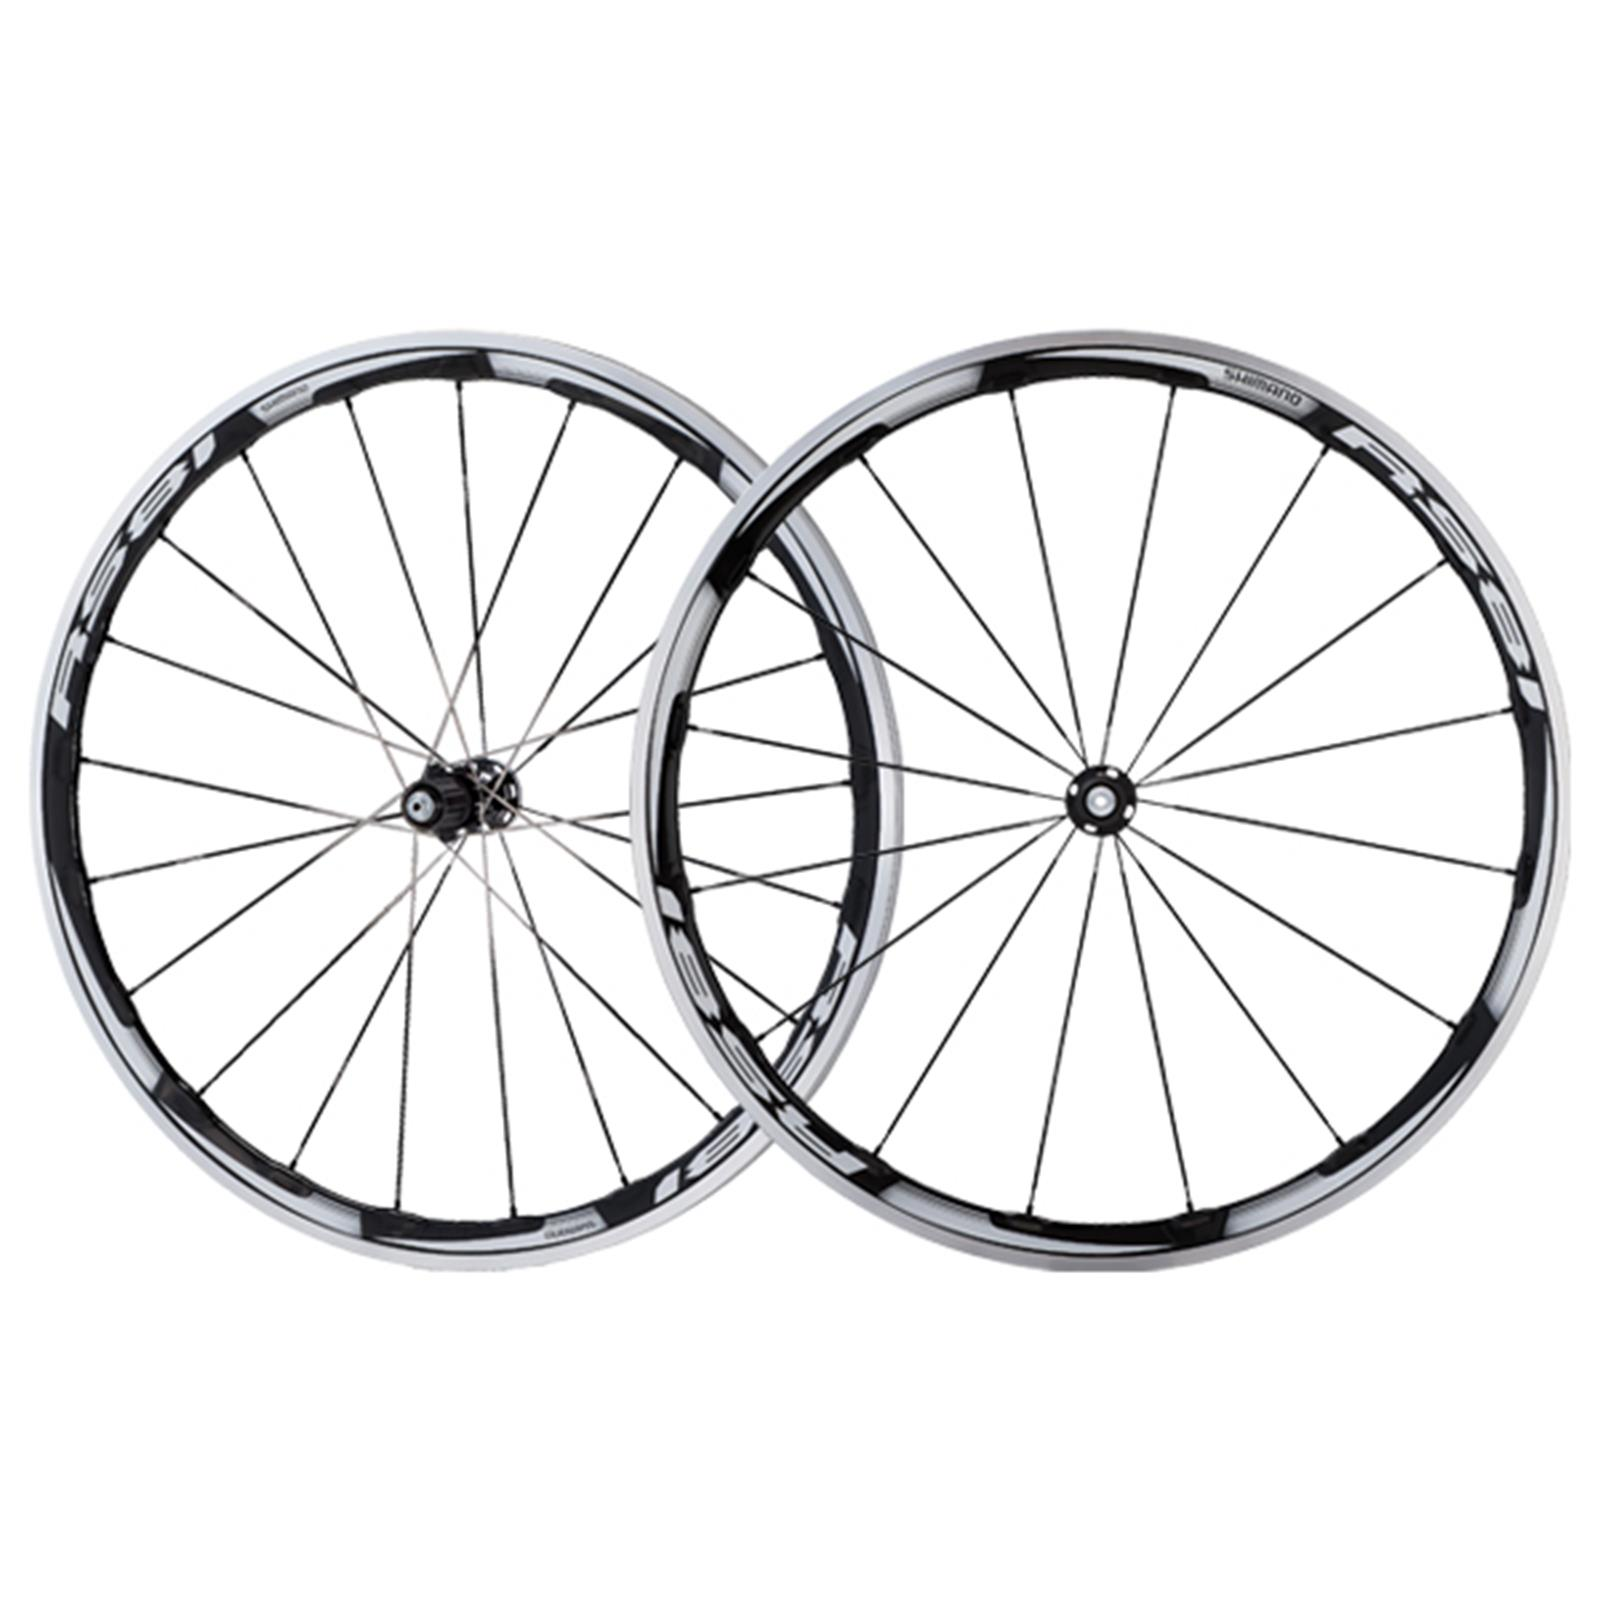 RDD-Shimano RS-81 C35 wielset